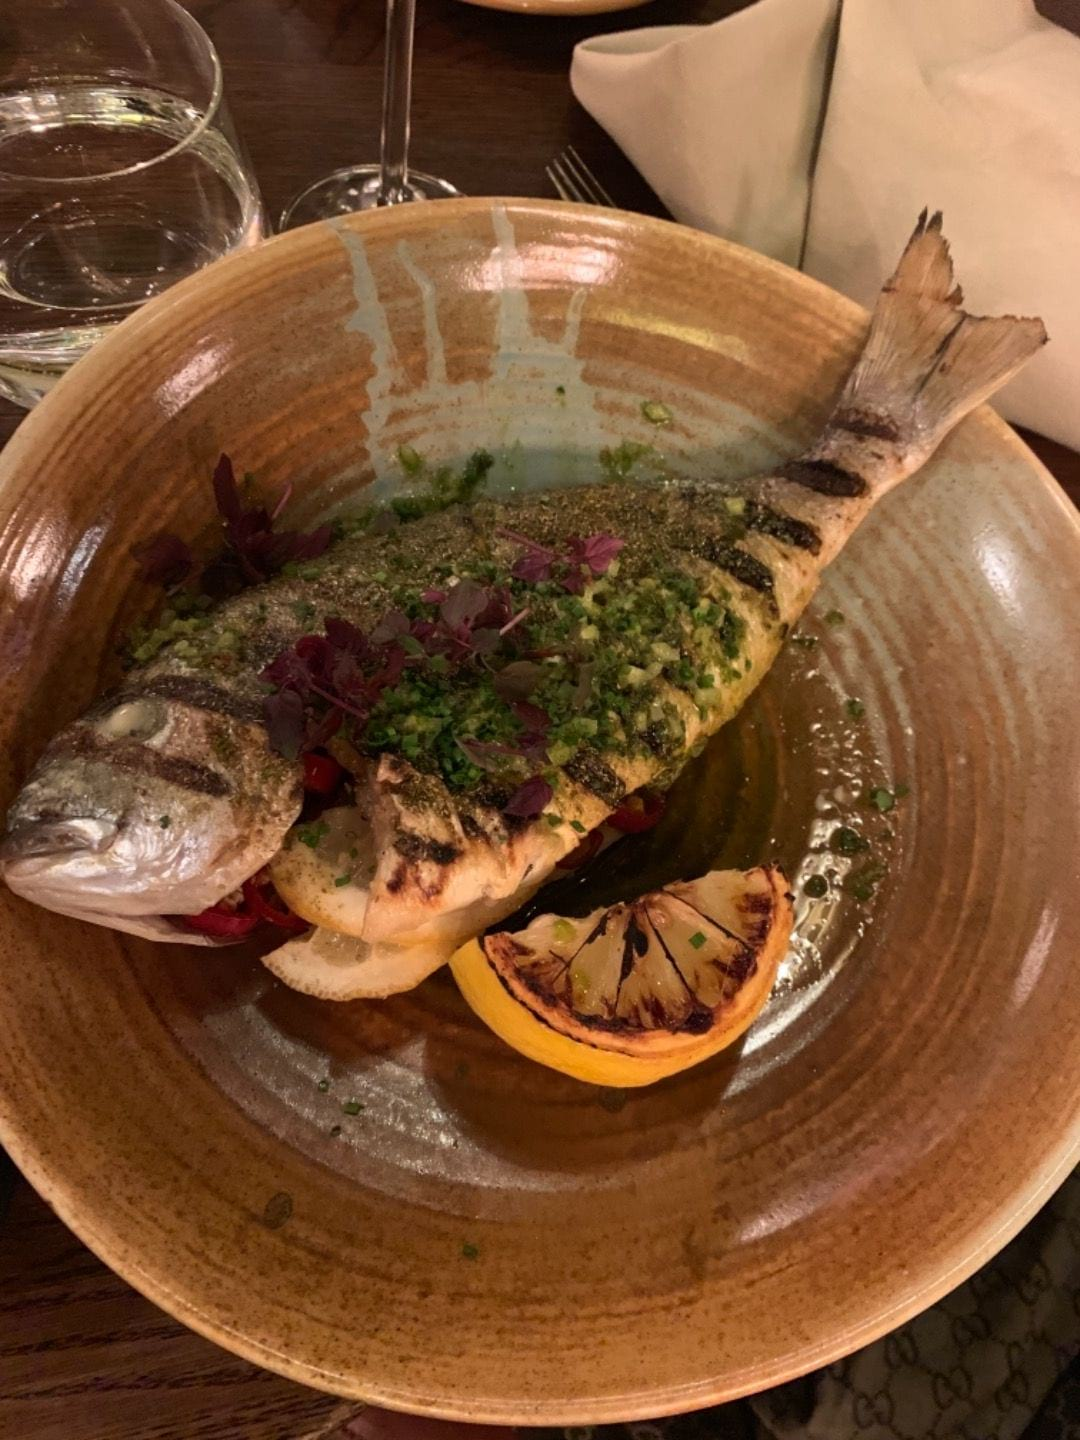 Durade – Photo from Nosh and Chow by Malin S.